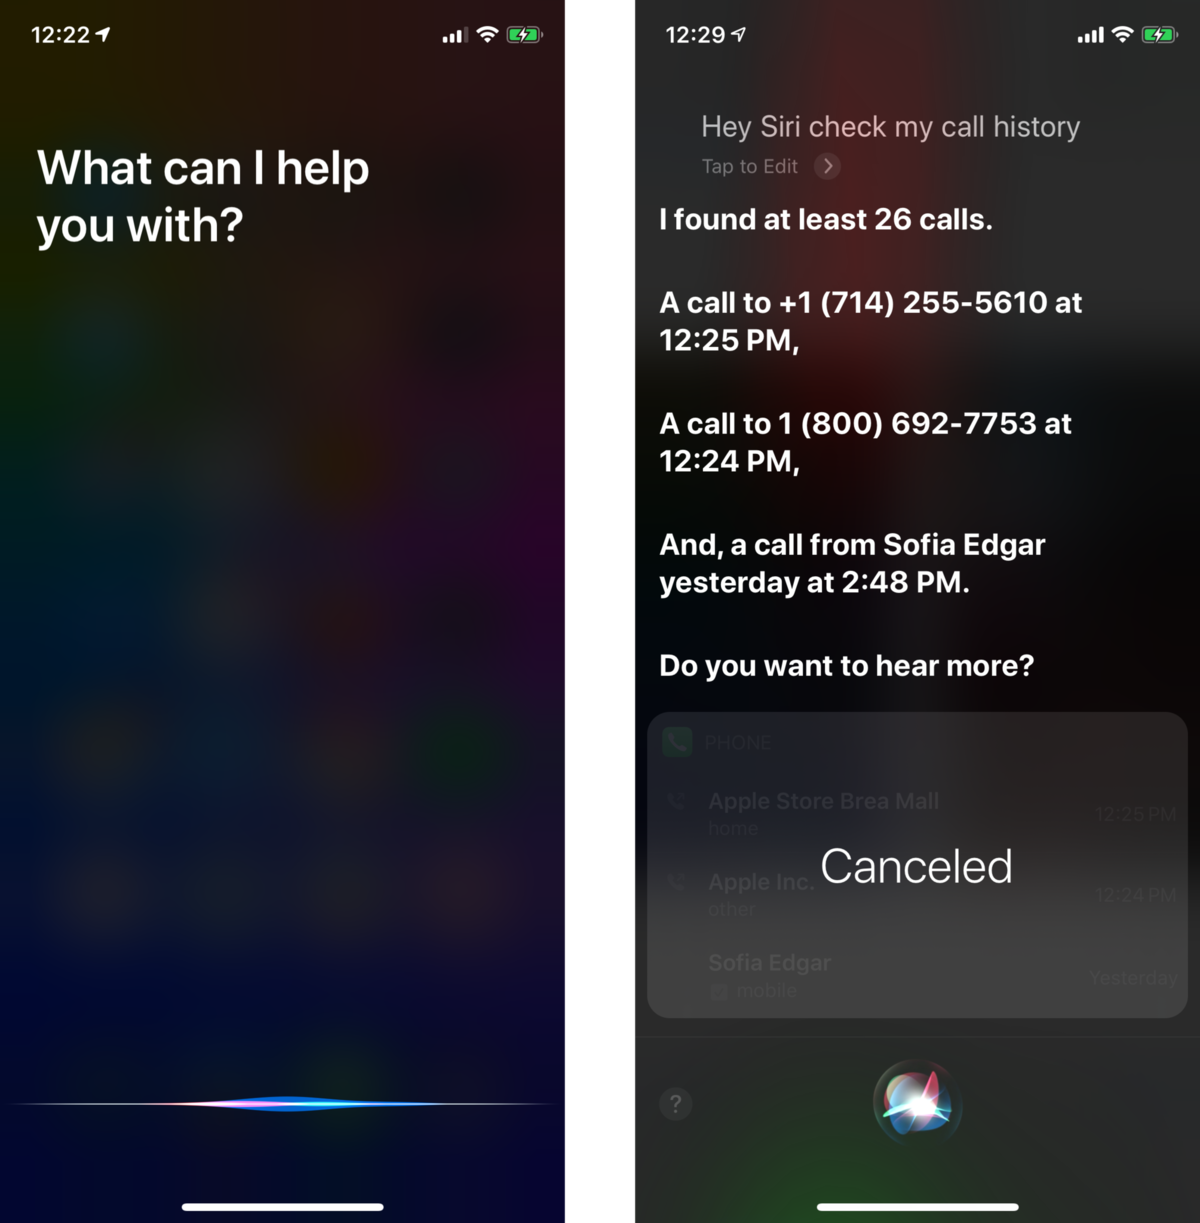 Tell Siri you want to know your call history